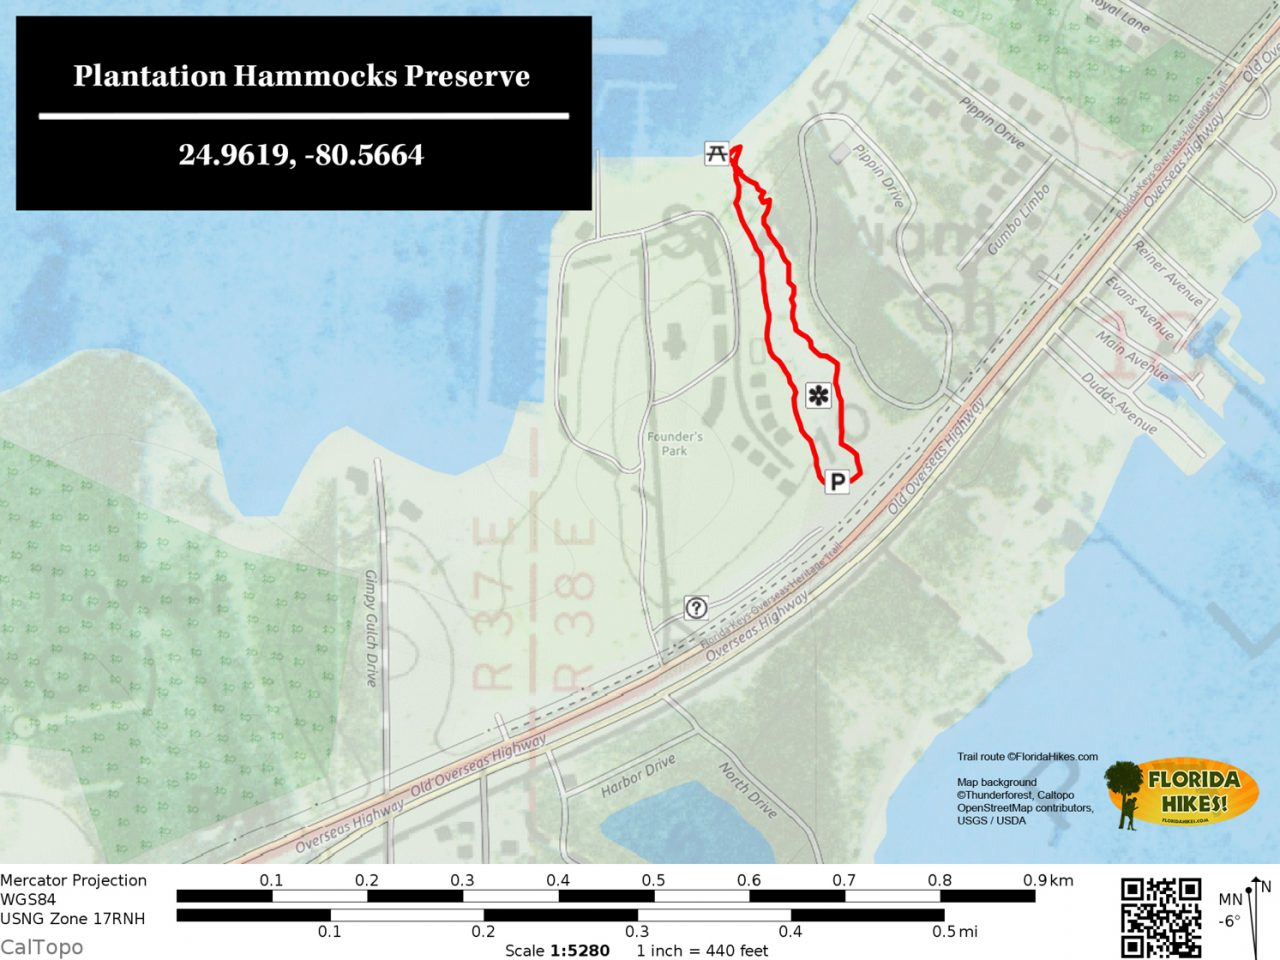 Plantation Hammocks Preserve trail map